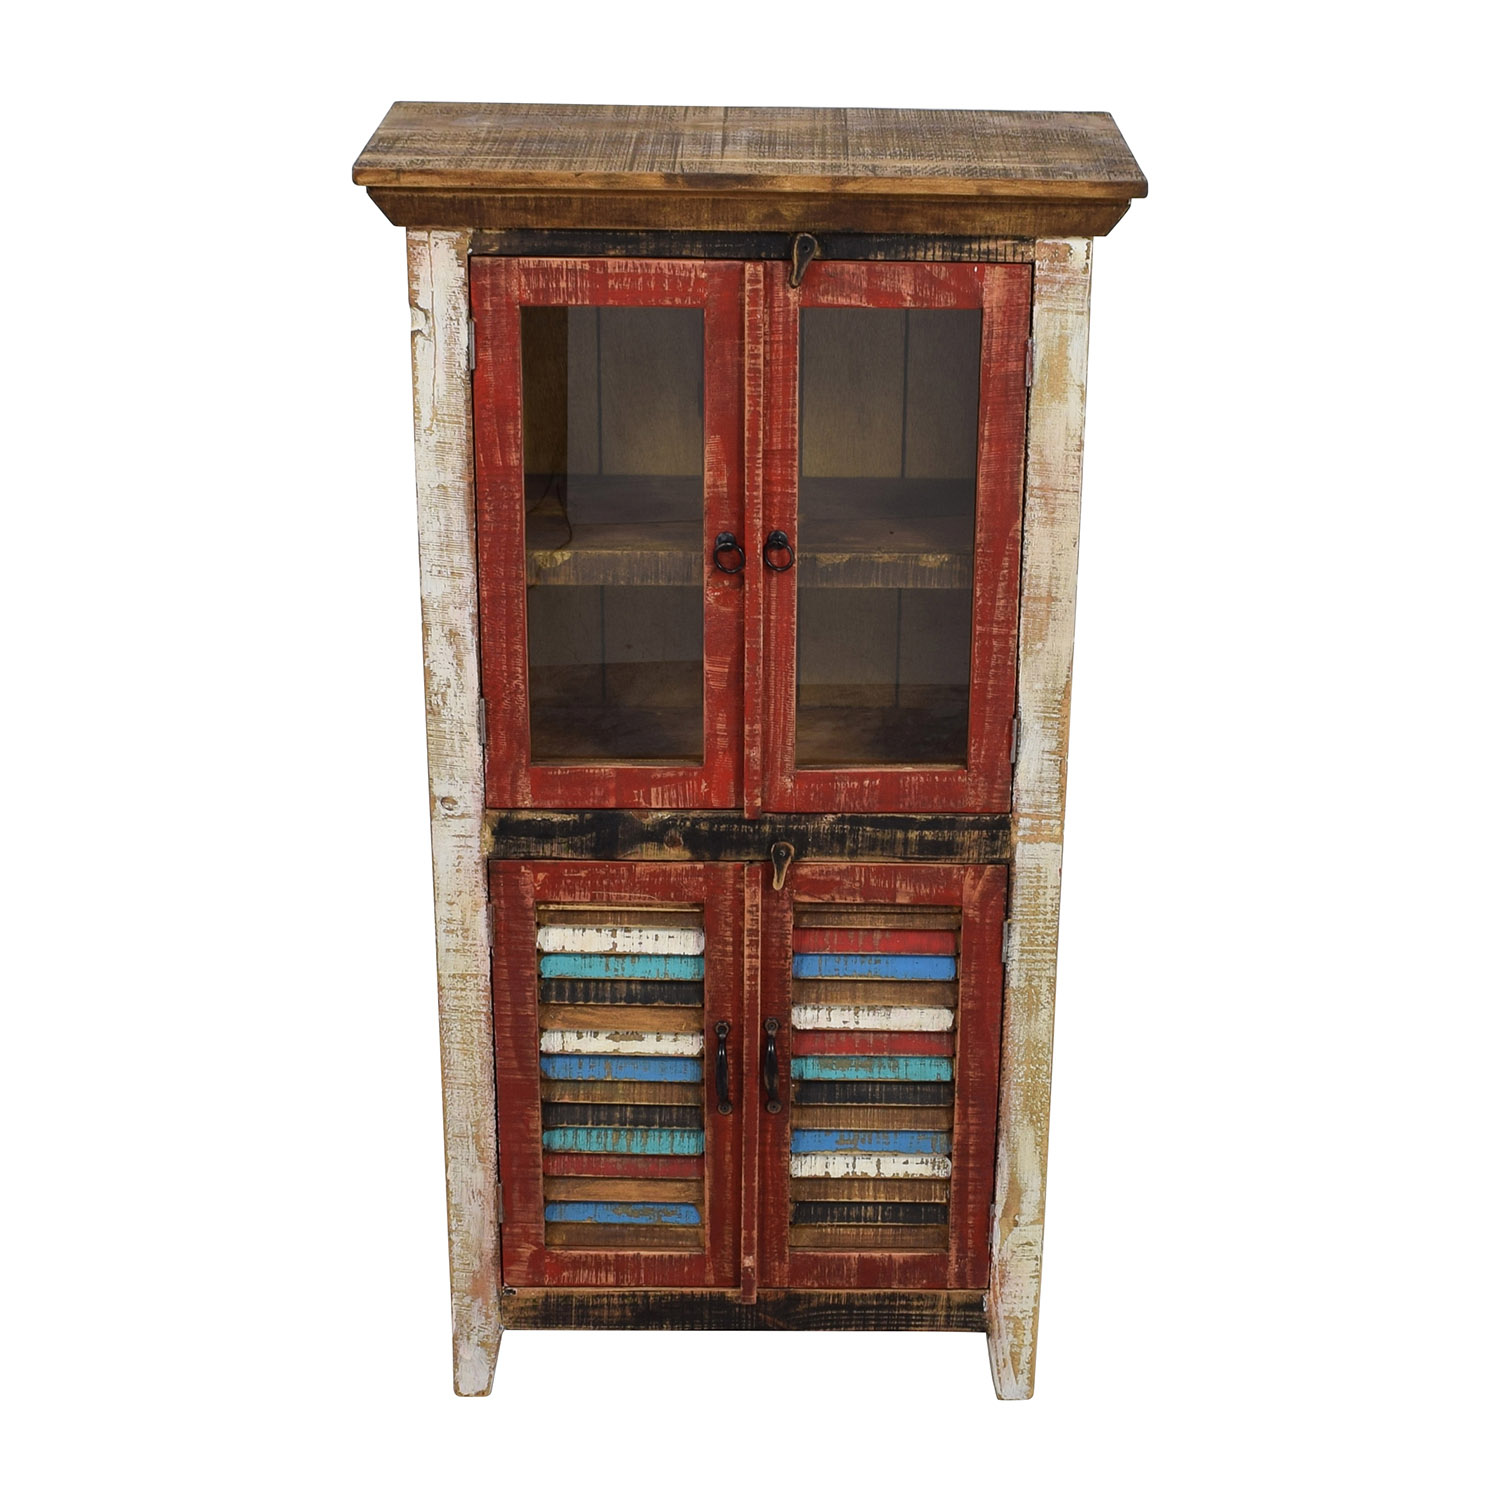 Antique Rustic Glass and Wood Cabinet Horizon Home